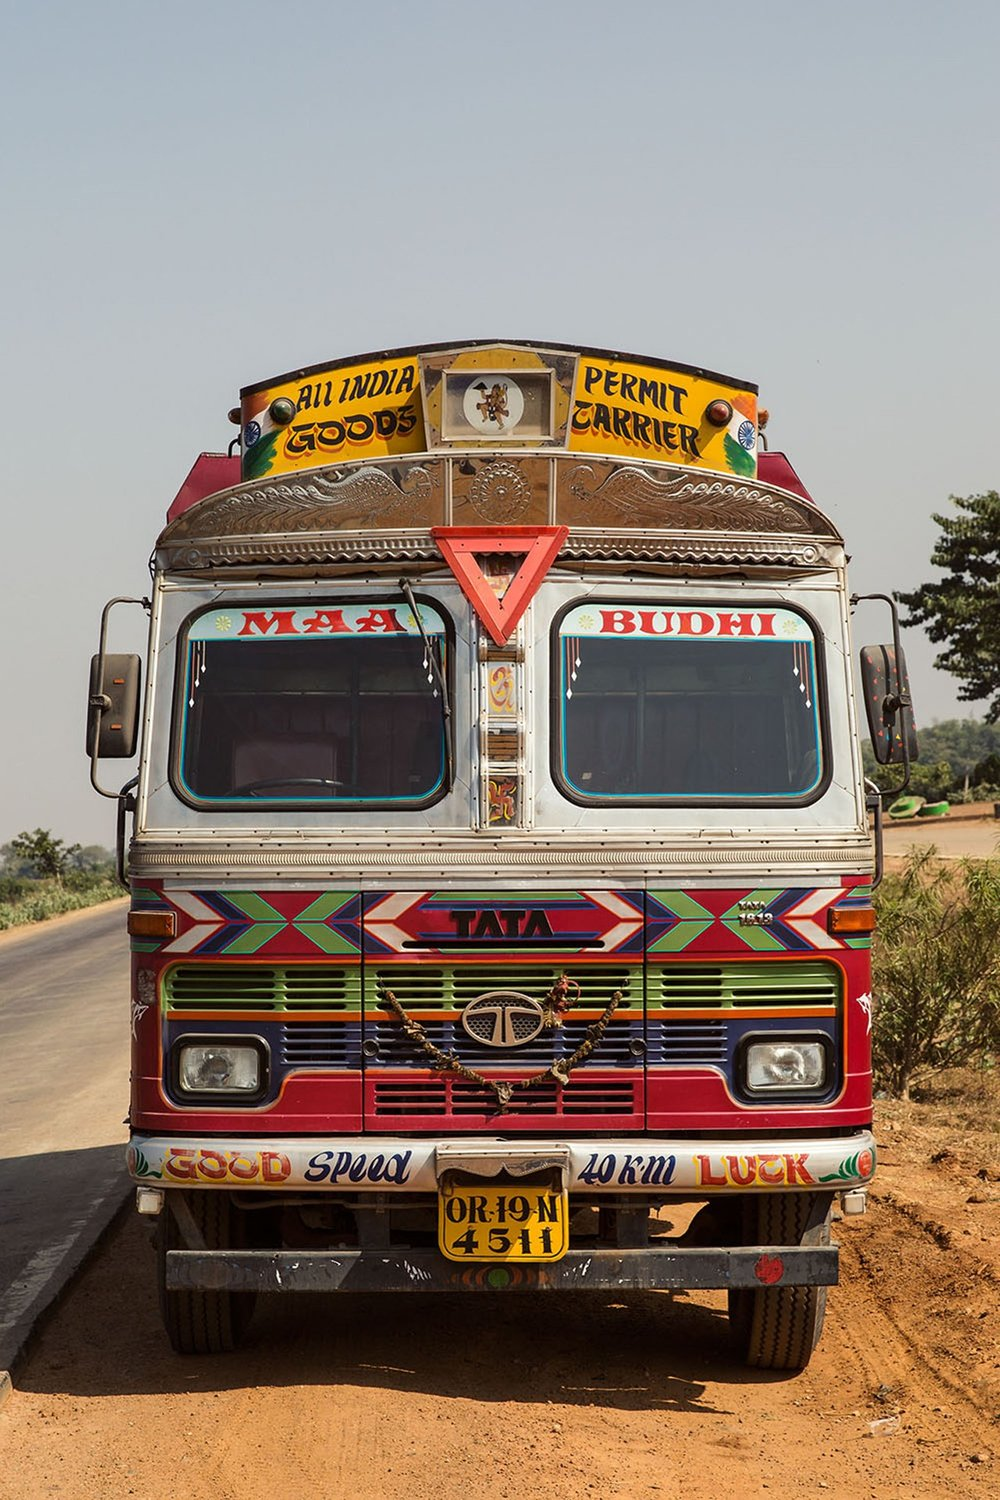 horn-please-the-decorated-trucks-of-india-7-conde-nast-traveller-18nov14-dan-eckstein.jpg